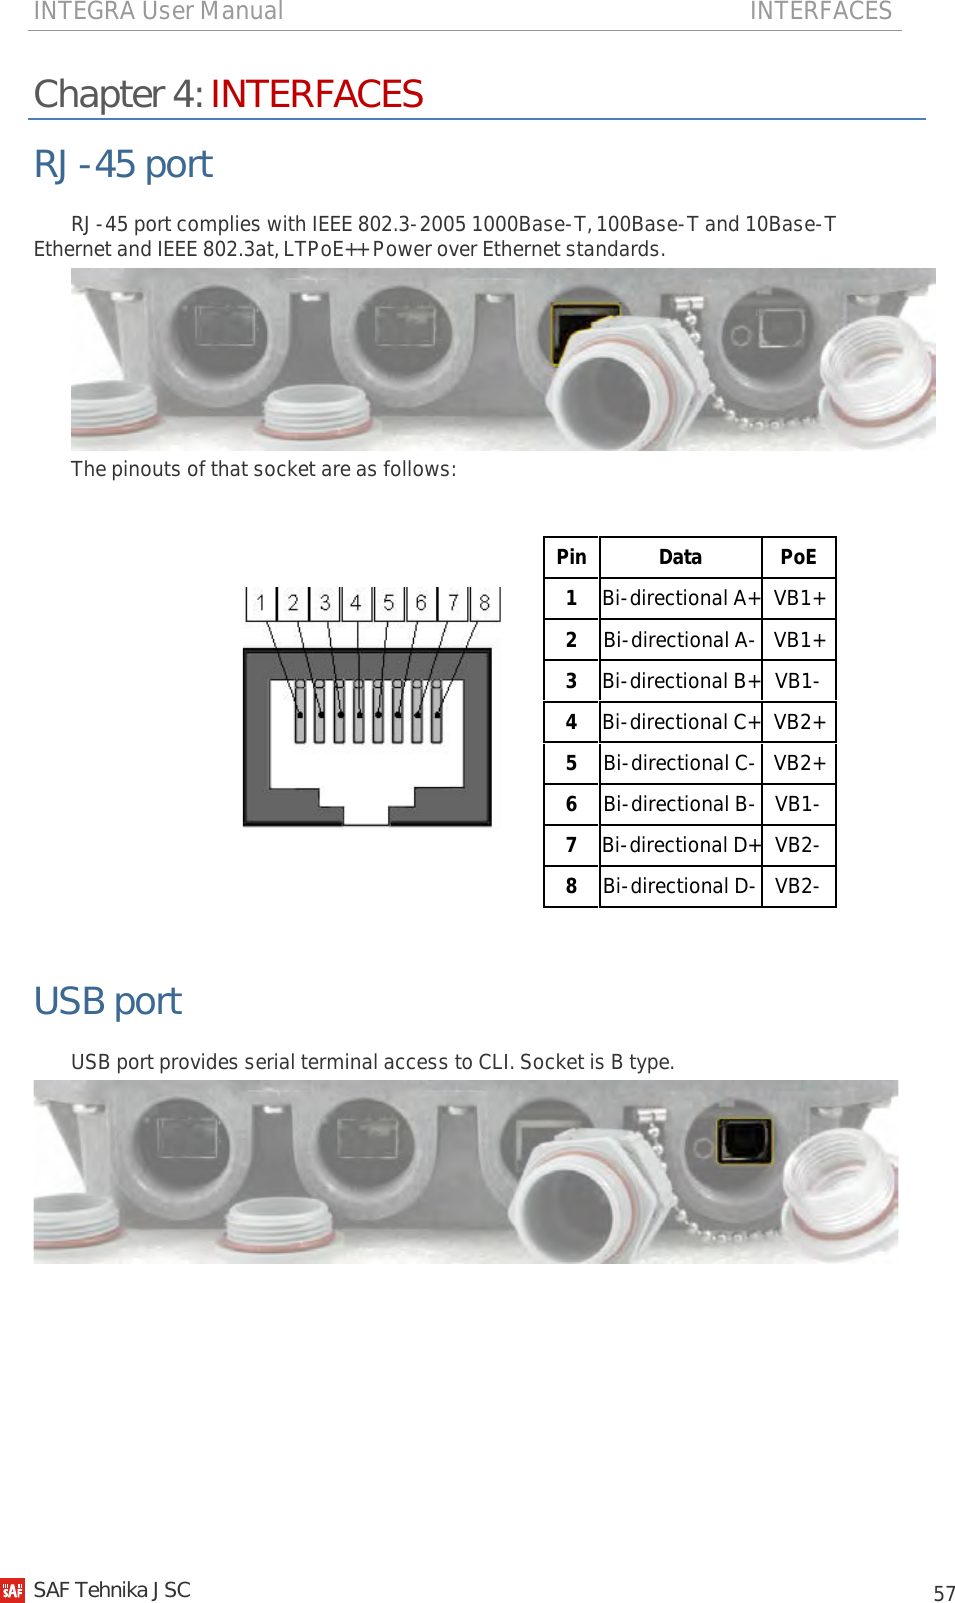 Awesome 10base T Pinout Image Collection - Best Images for wiring ...